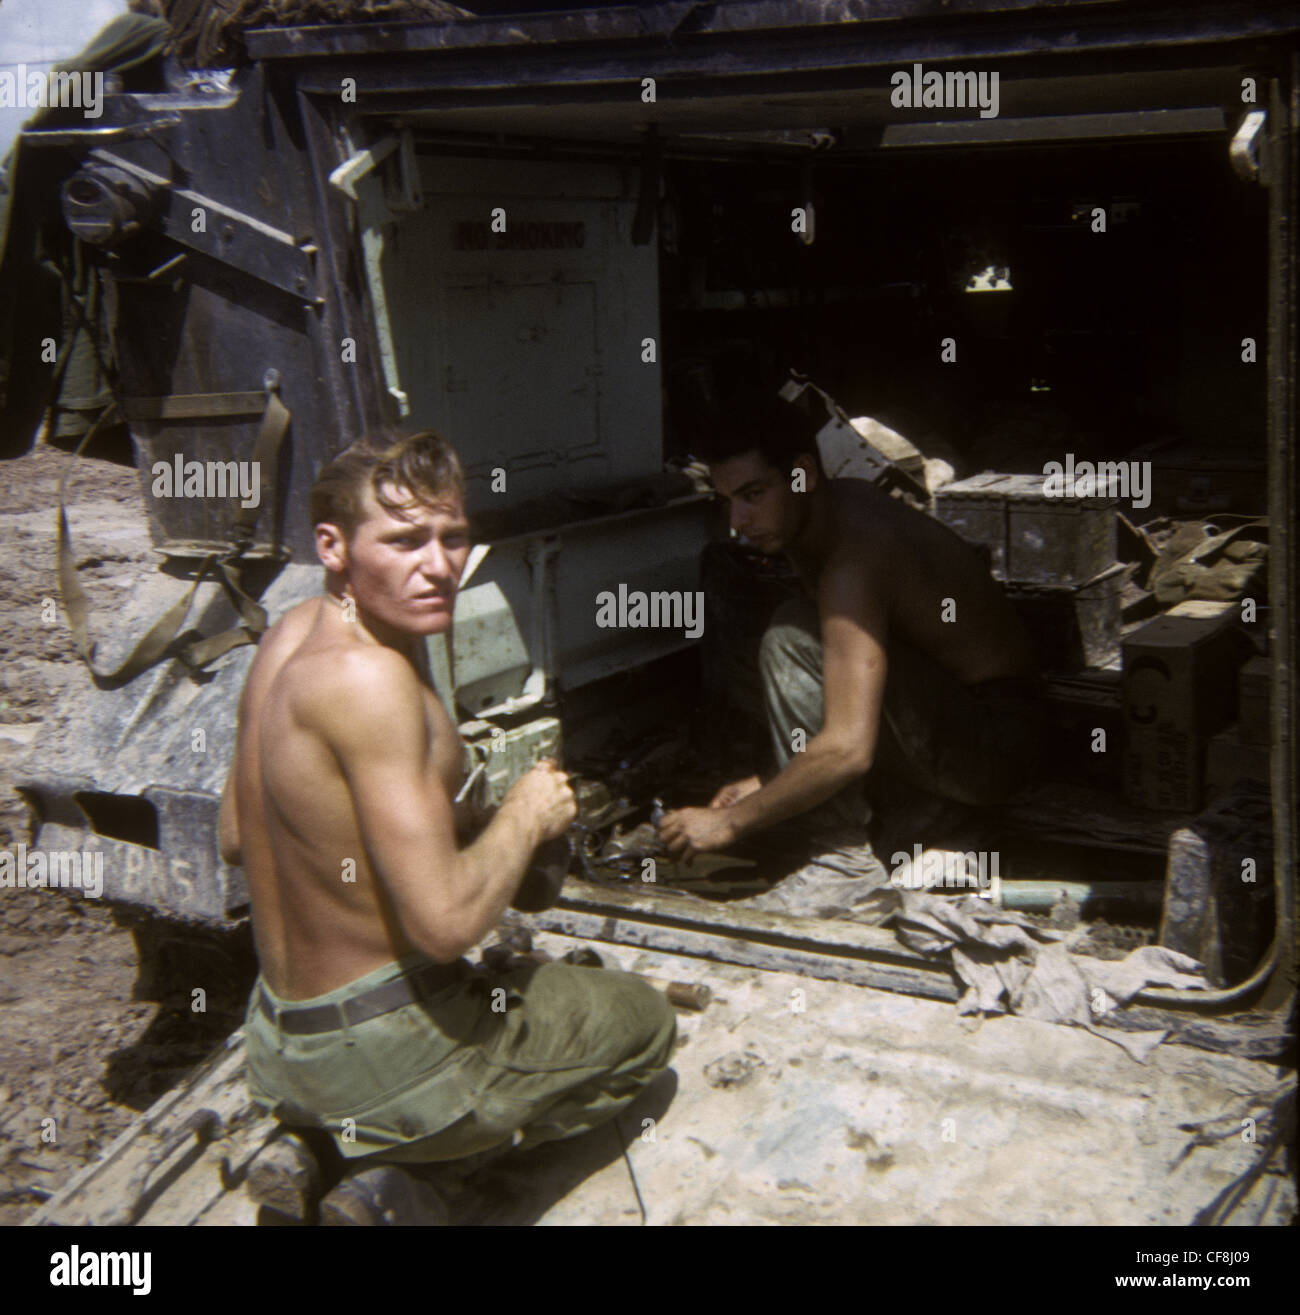 Soldiers repairing APC 1/5th (Mechanized) Infantry CU CHI VIETNAM War 1966 M113 armored personnel carriers 25th - Stock Image